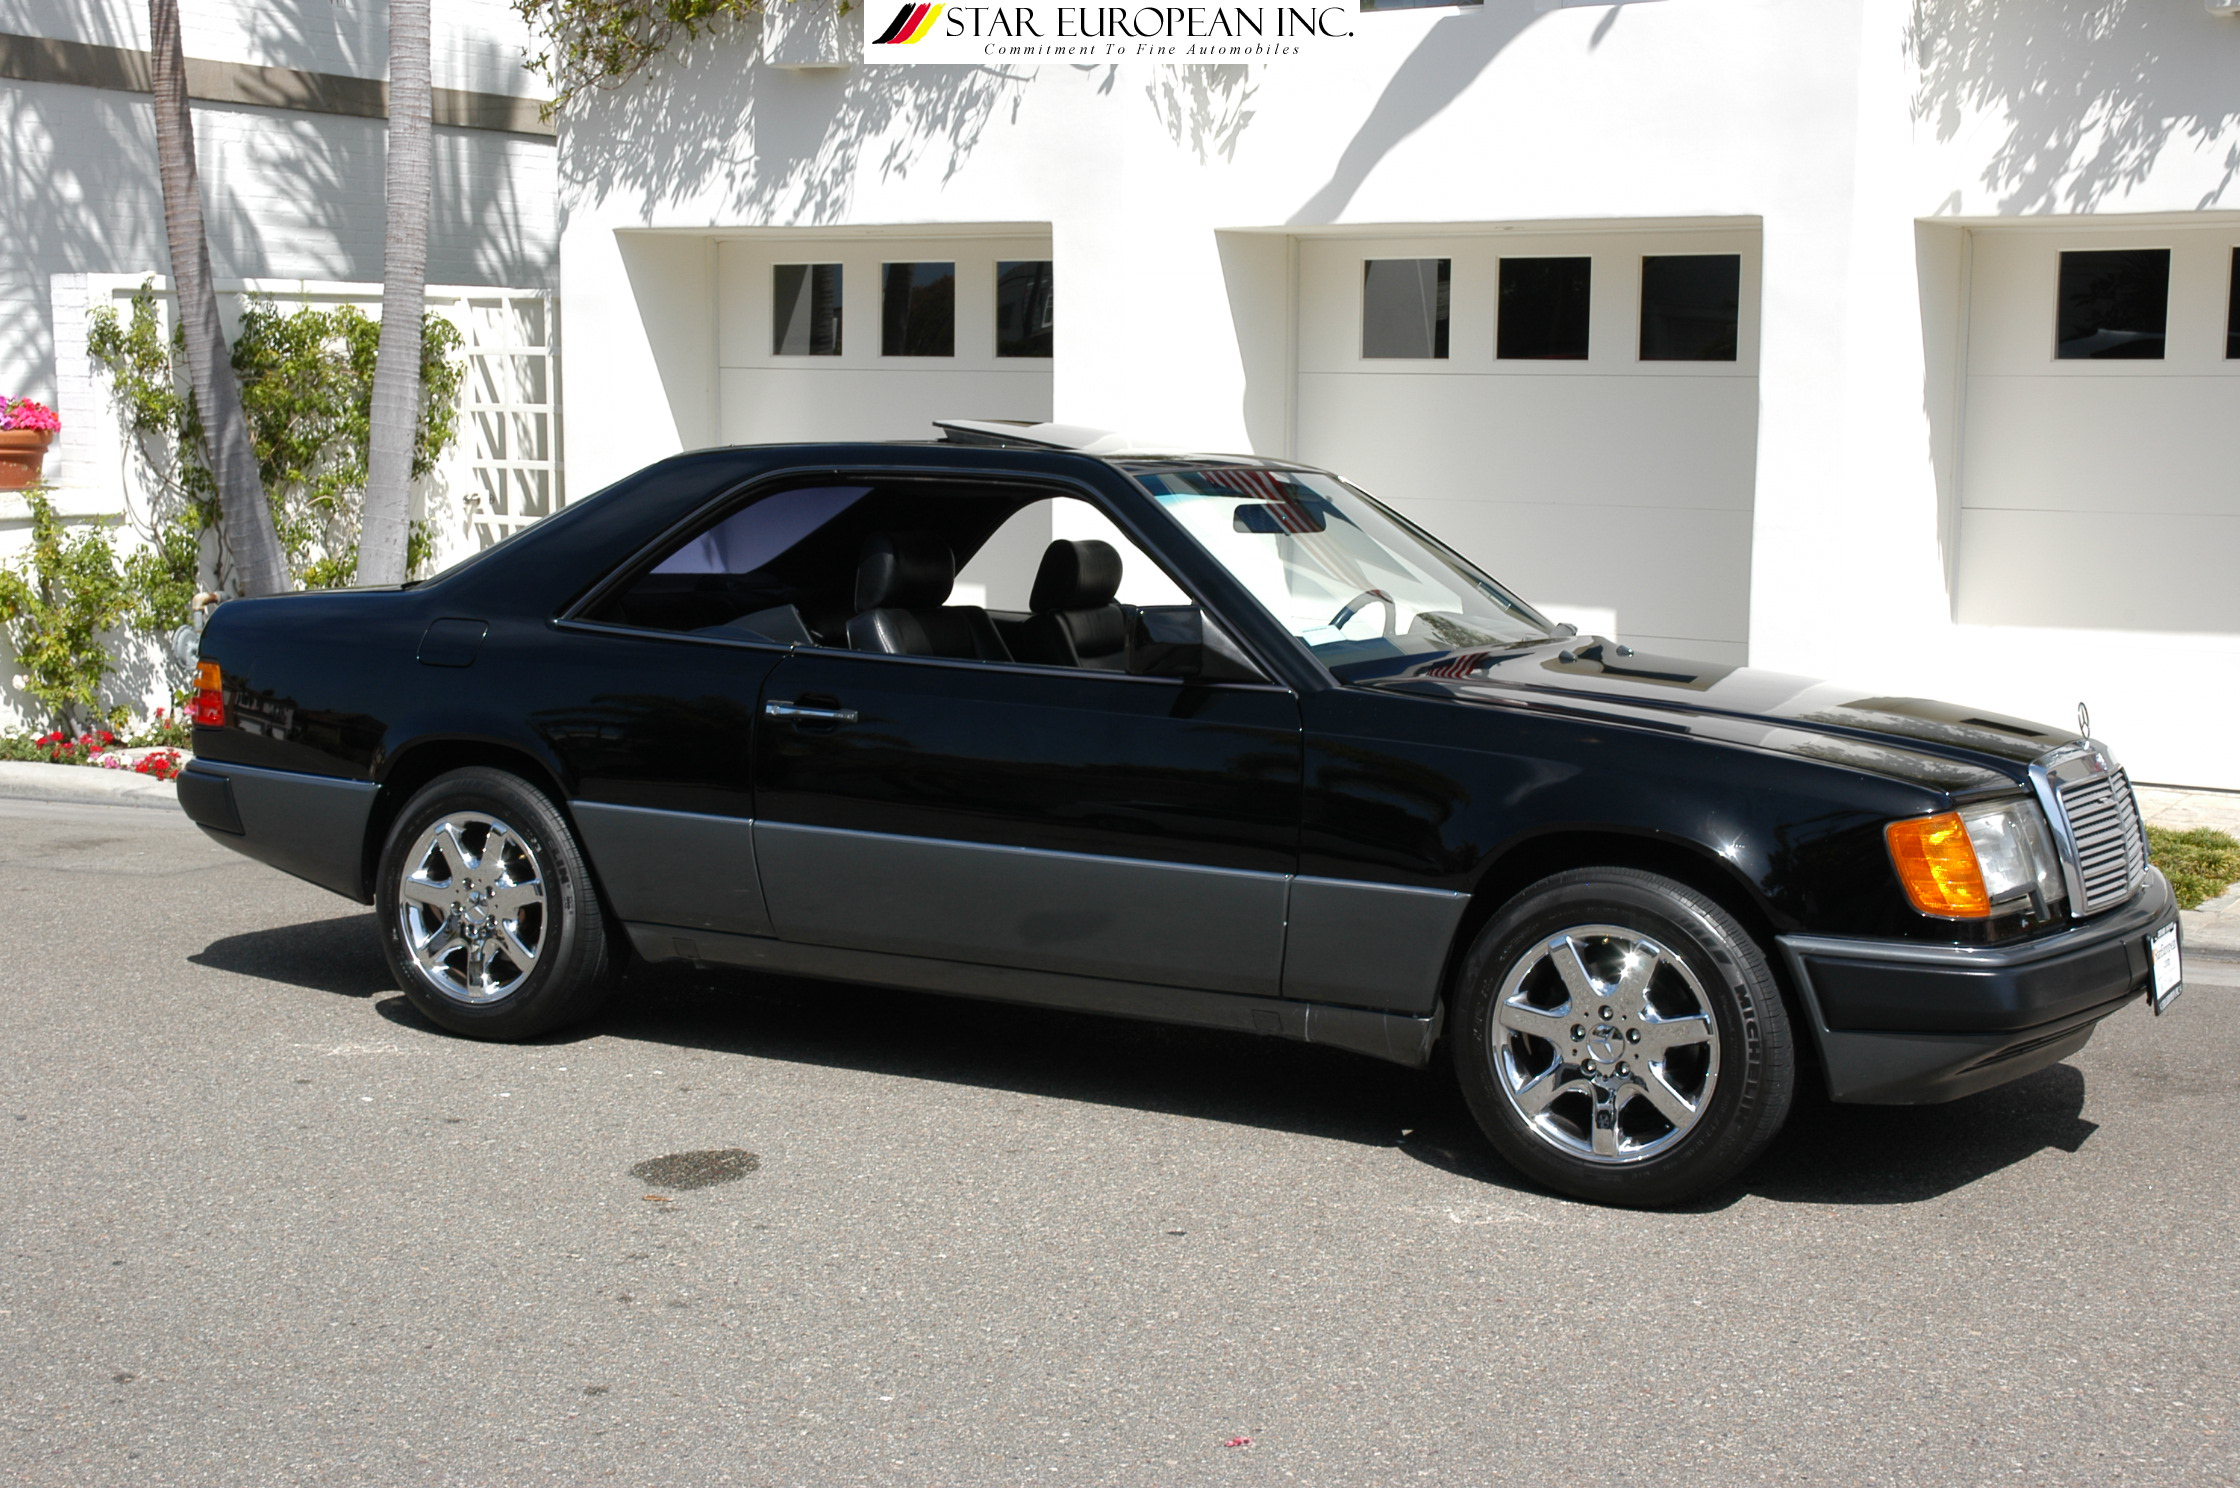 1990 mercedes benz 300 photos informations articles for How much is a 1990 mercedes benz worth